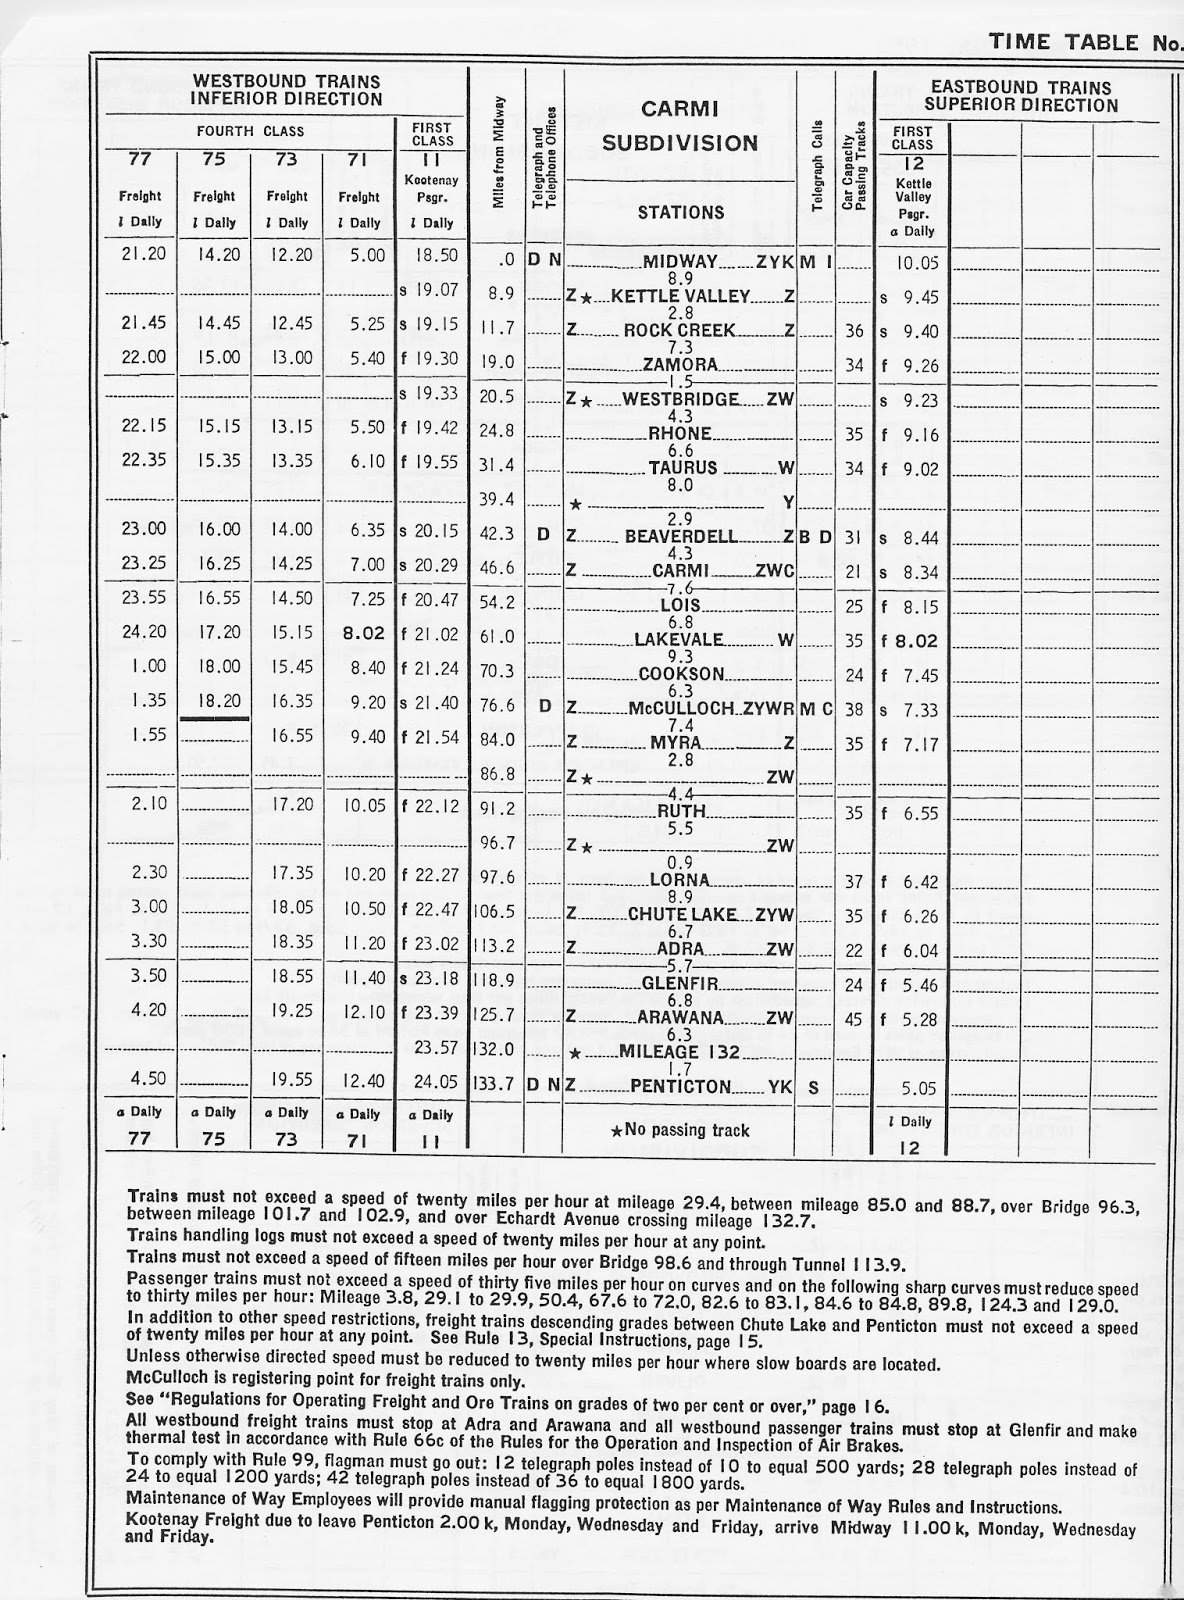 kettle valley model railway carmi timetable notes part  for many years timetables were issued every six months in and usually only minor changes but sometimes major schedule revisions